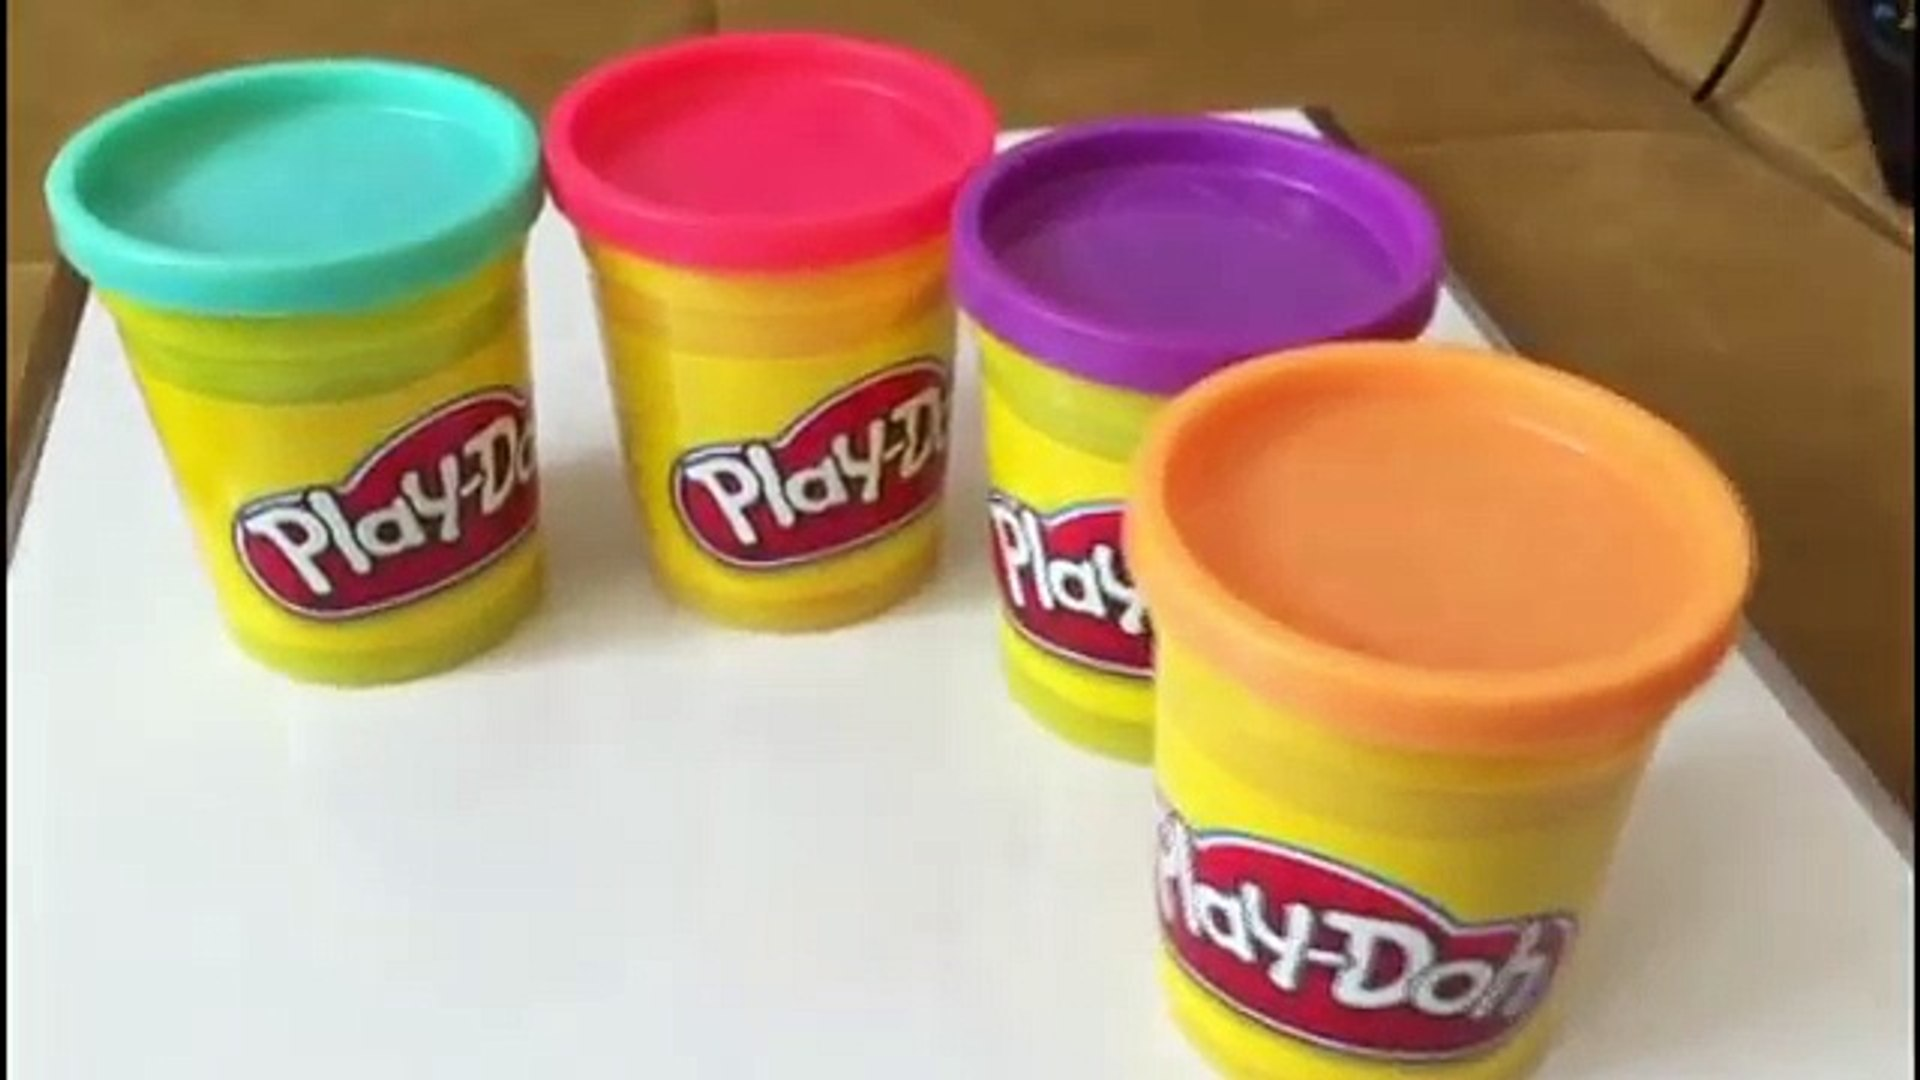 Play doh games for girls, play doh ideas, play doh kids